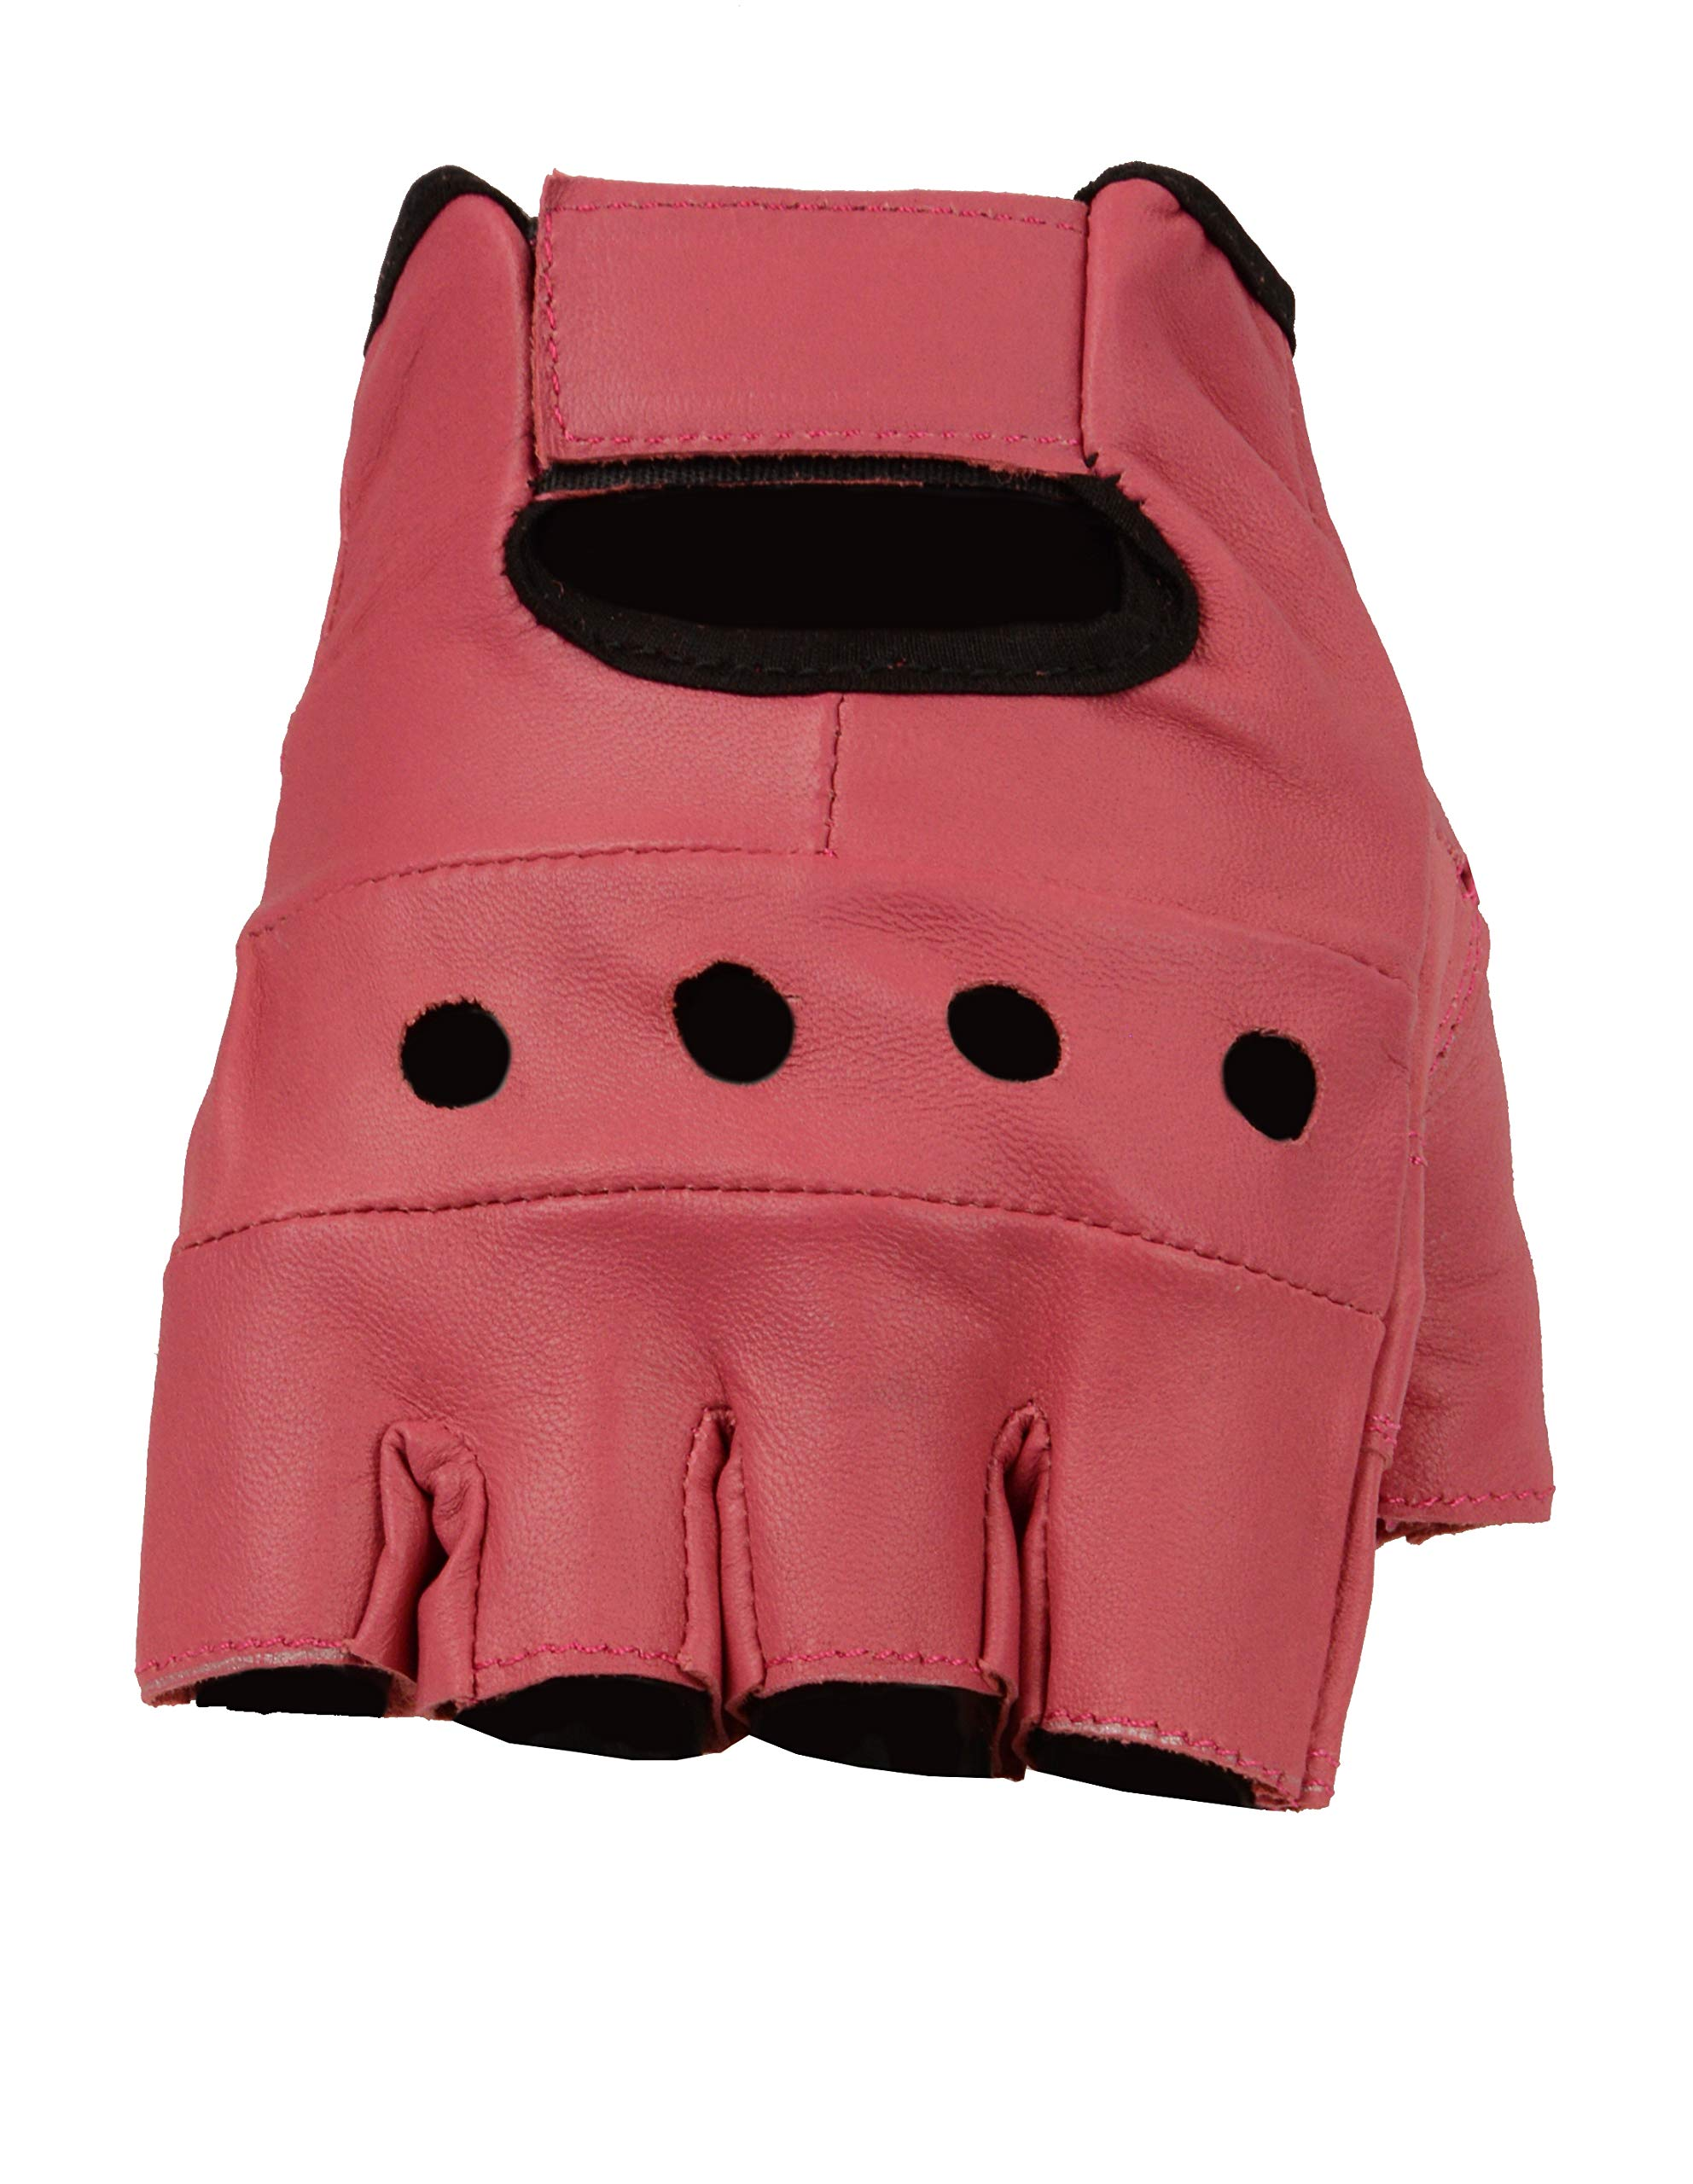 The Bikers Zone Women's Leather Fingerless Gloves, Soft Lambskin Leather (Fuchsia, S)